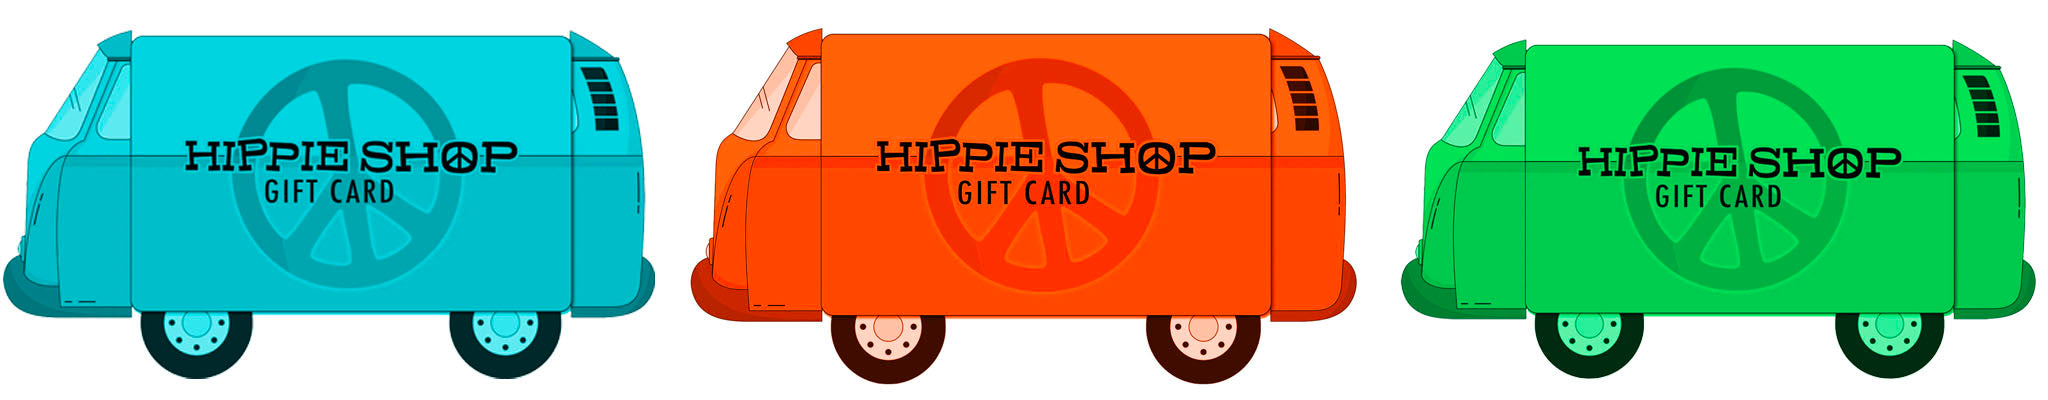 Hippie Shop Coupons